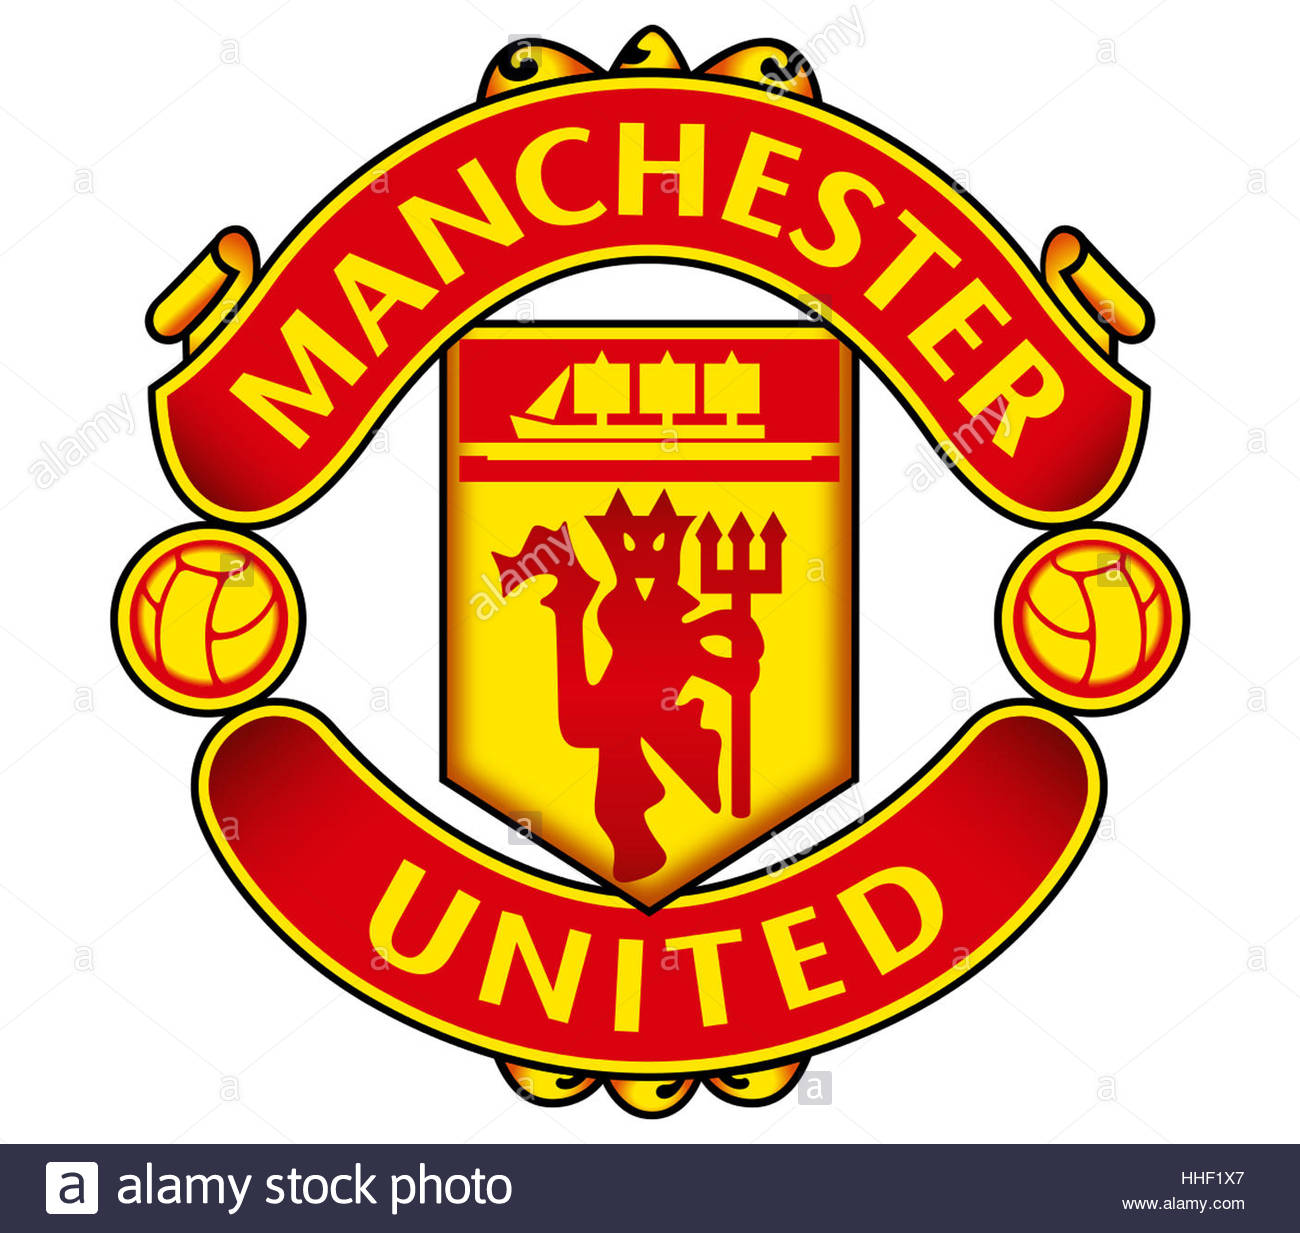 Manchester united logo clipart png library library 63+ Manchester United Logo Clipart | ClipartLook png library library